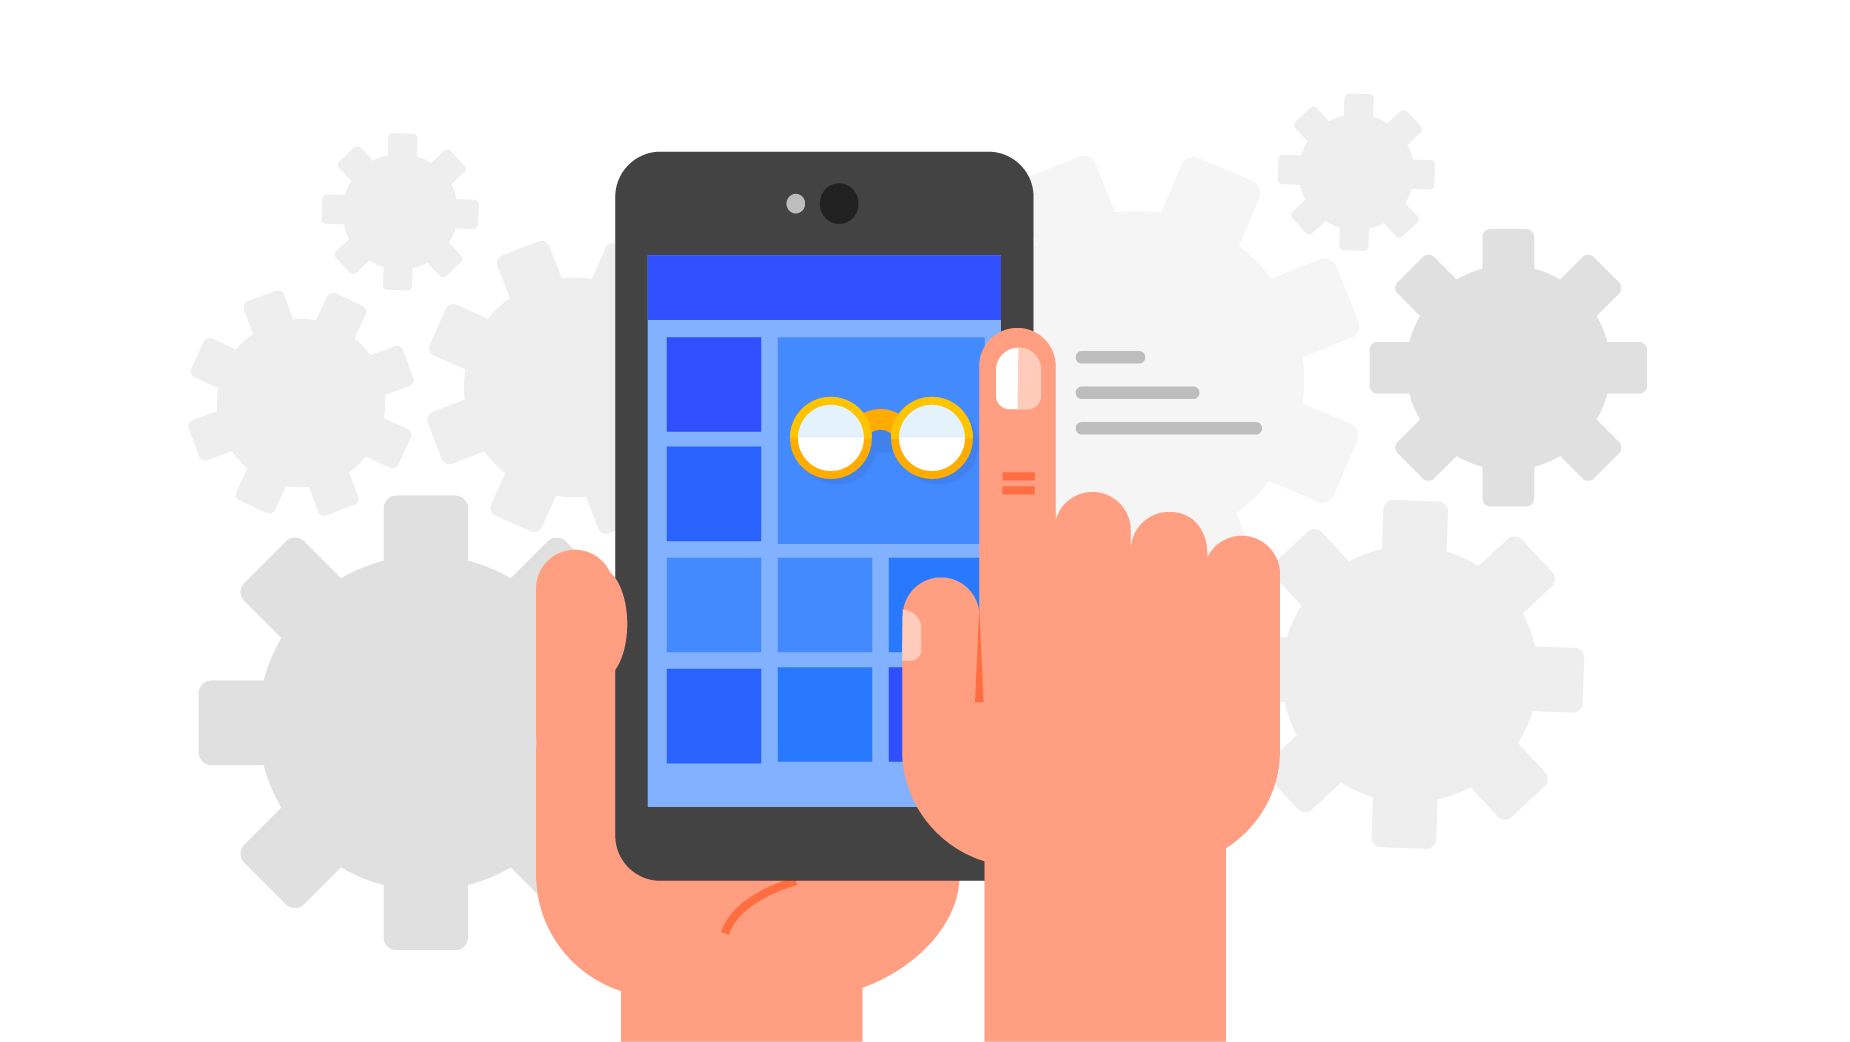 Progressive Web Apps - a hype or more? | appculture